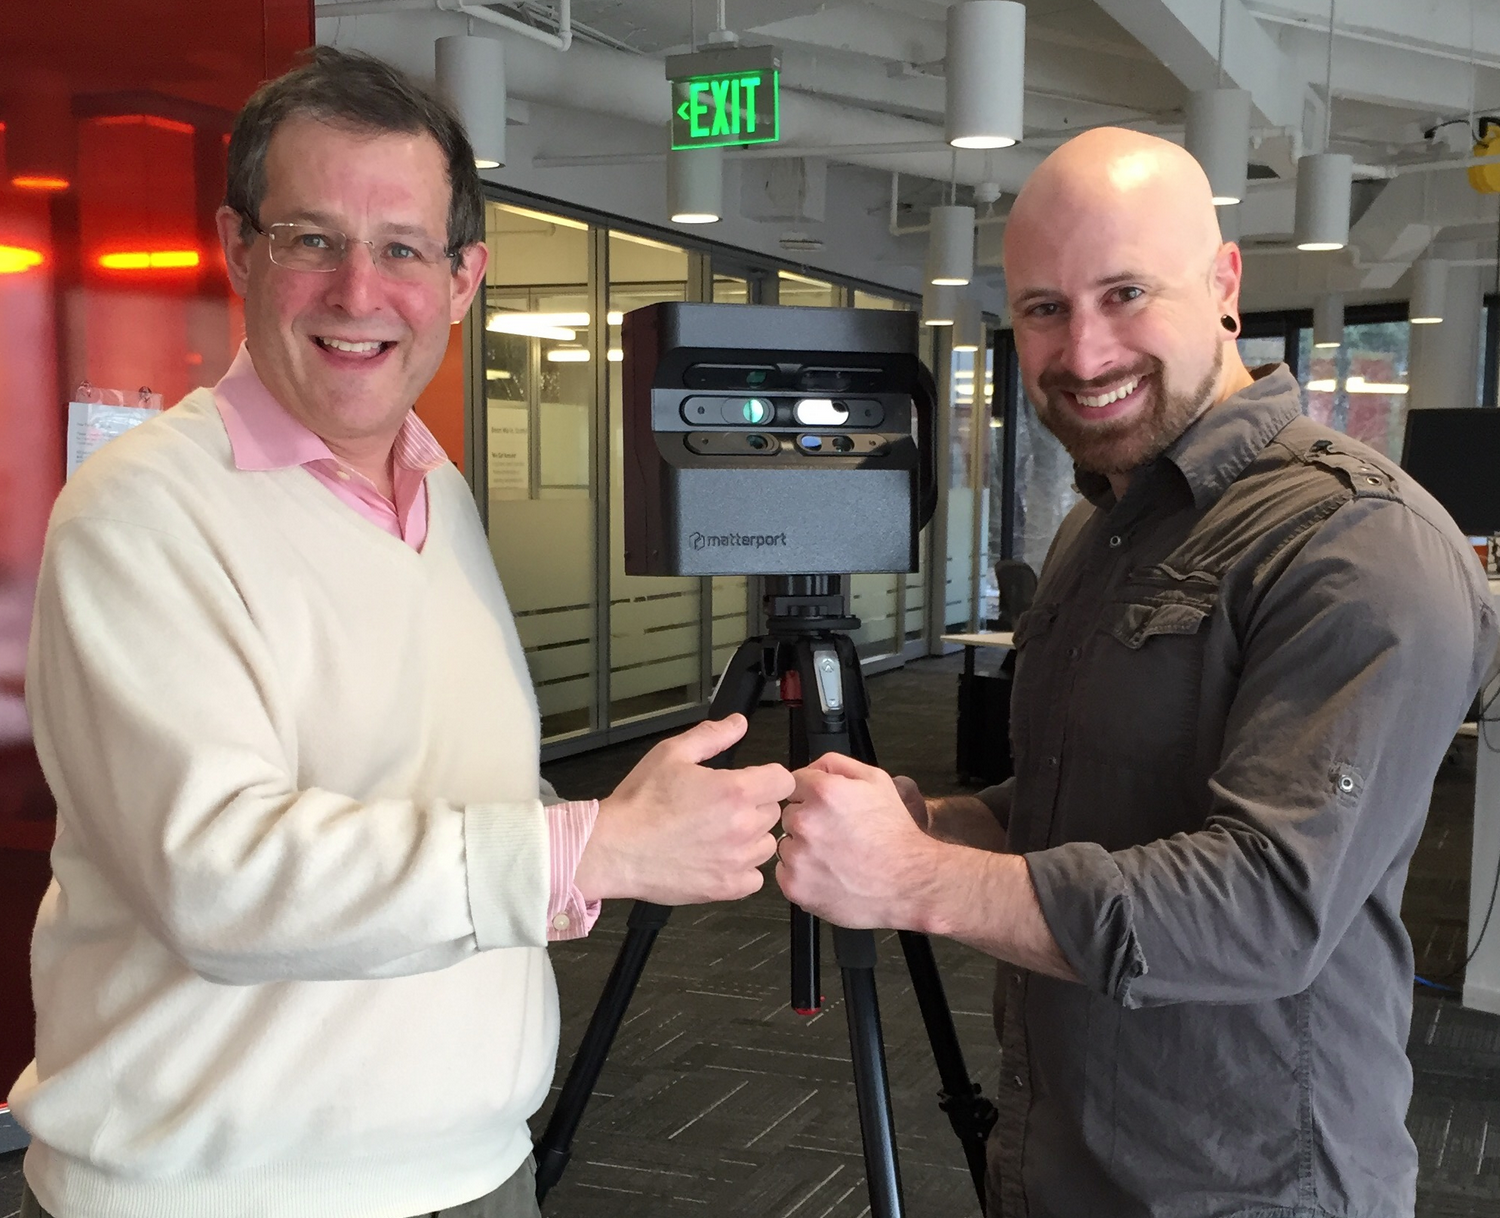 We Get Around Founder, CEO and Chief Photographer Dan Smigrod and Ninja Post Founder Mike Wilt with Matterport Pro 3D Camera | Image by Kerry Abner